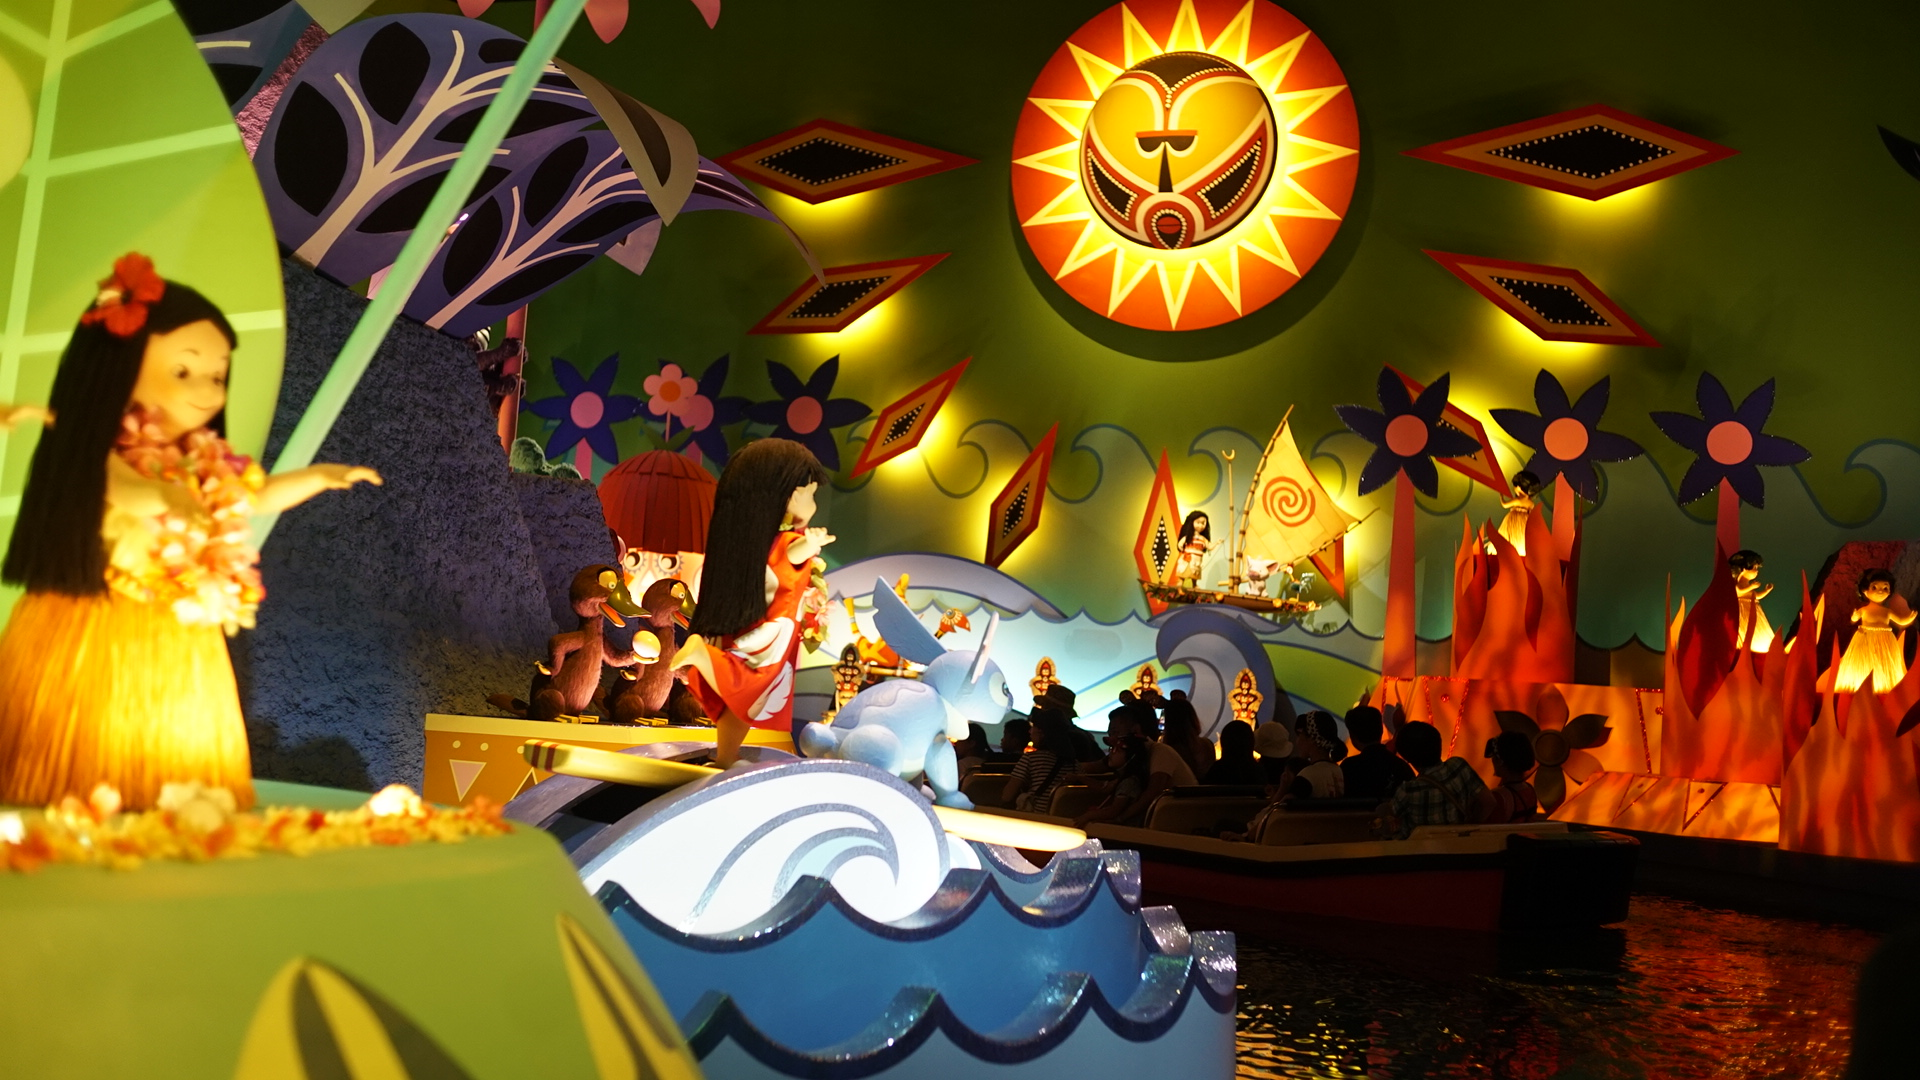 """Lilo and Stitch, Moana, Pua, and Hei Hei appear in the Polynesian scene in """"it's a small world"""" at Tokyo Disneyland."""